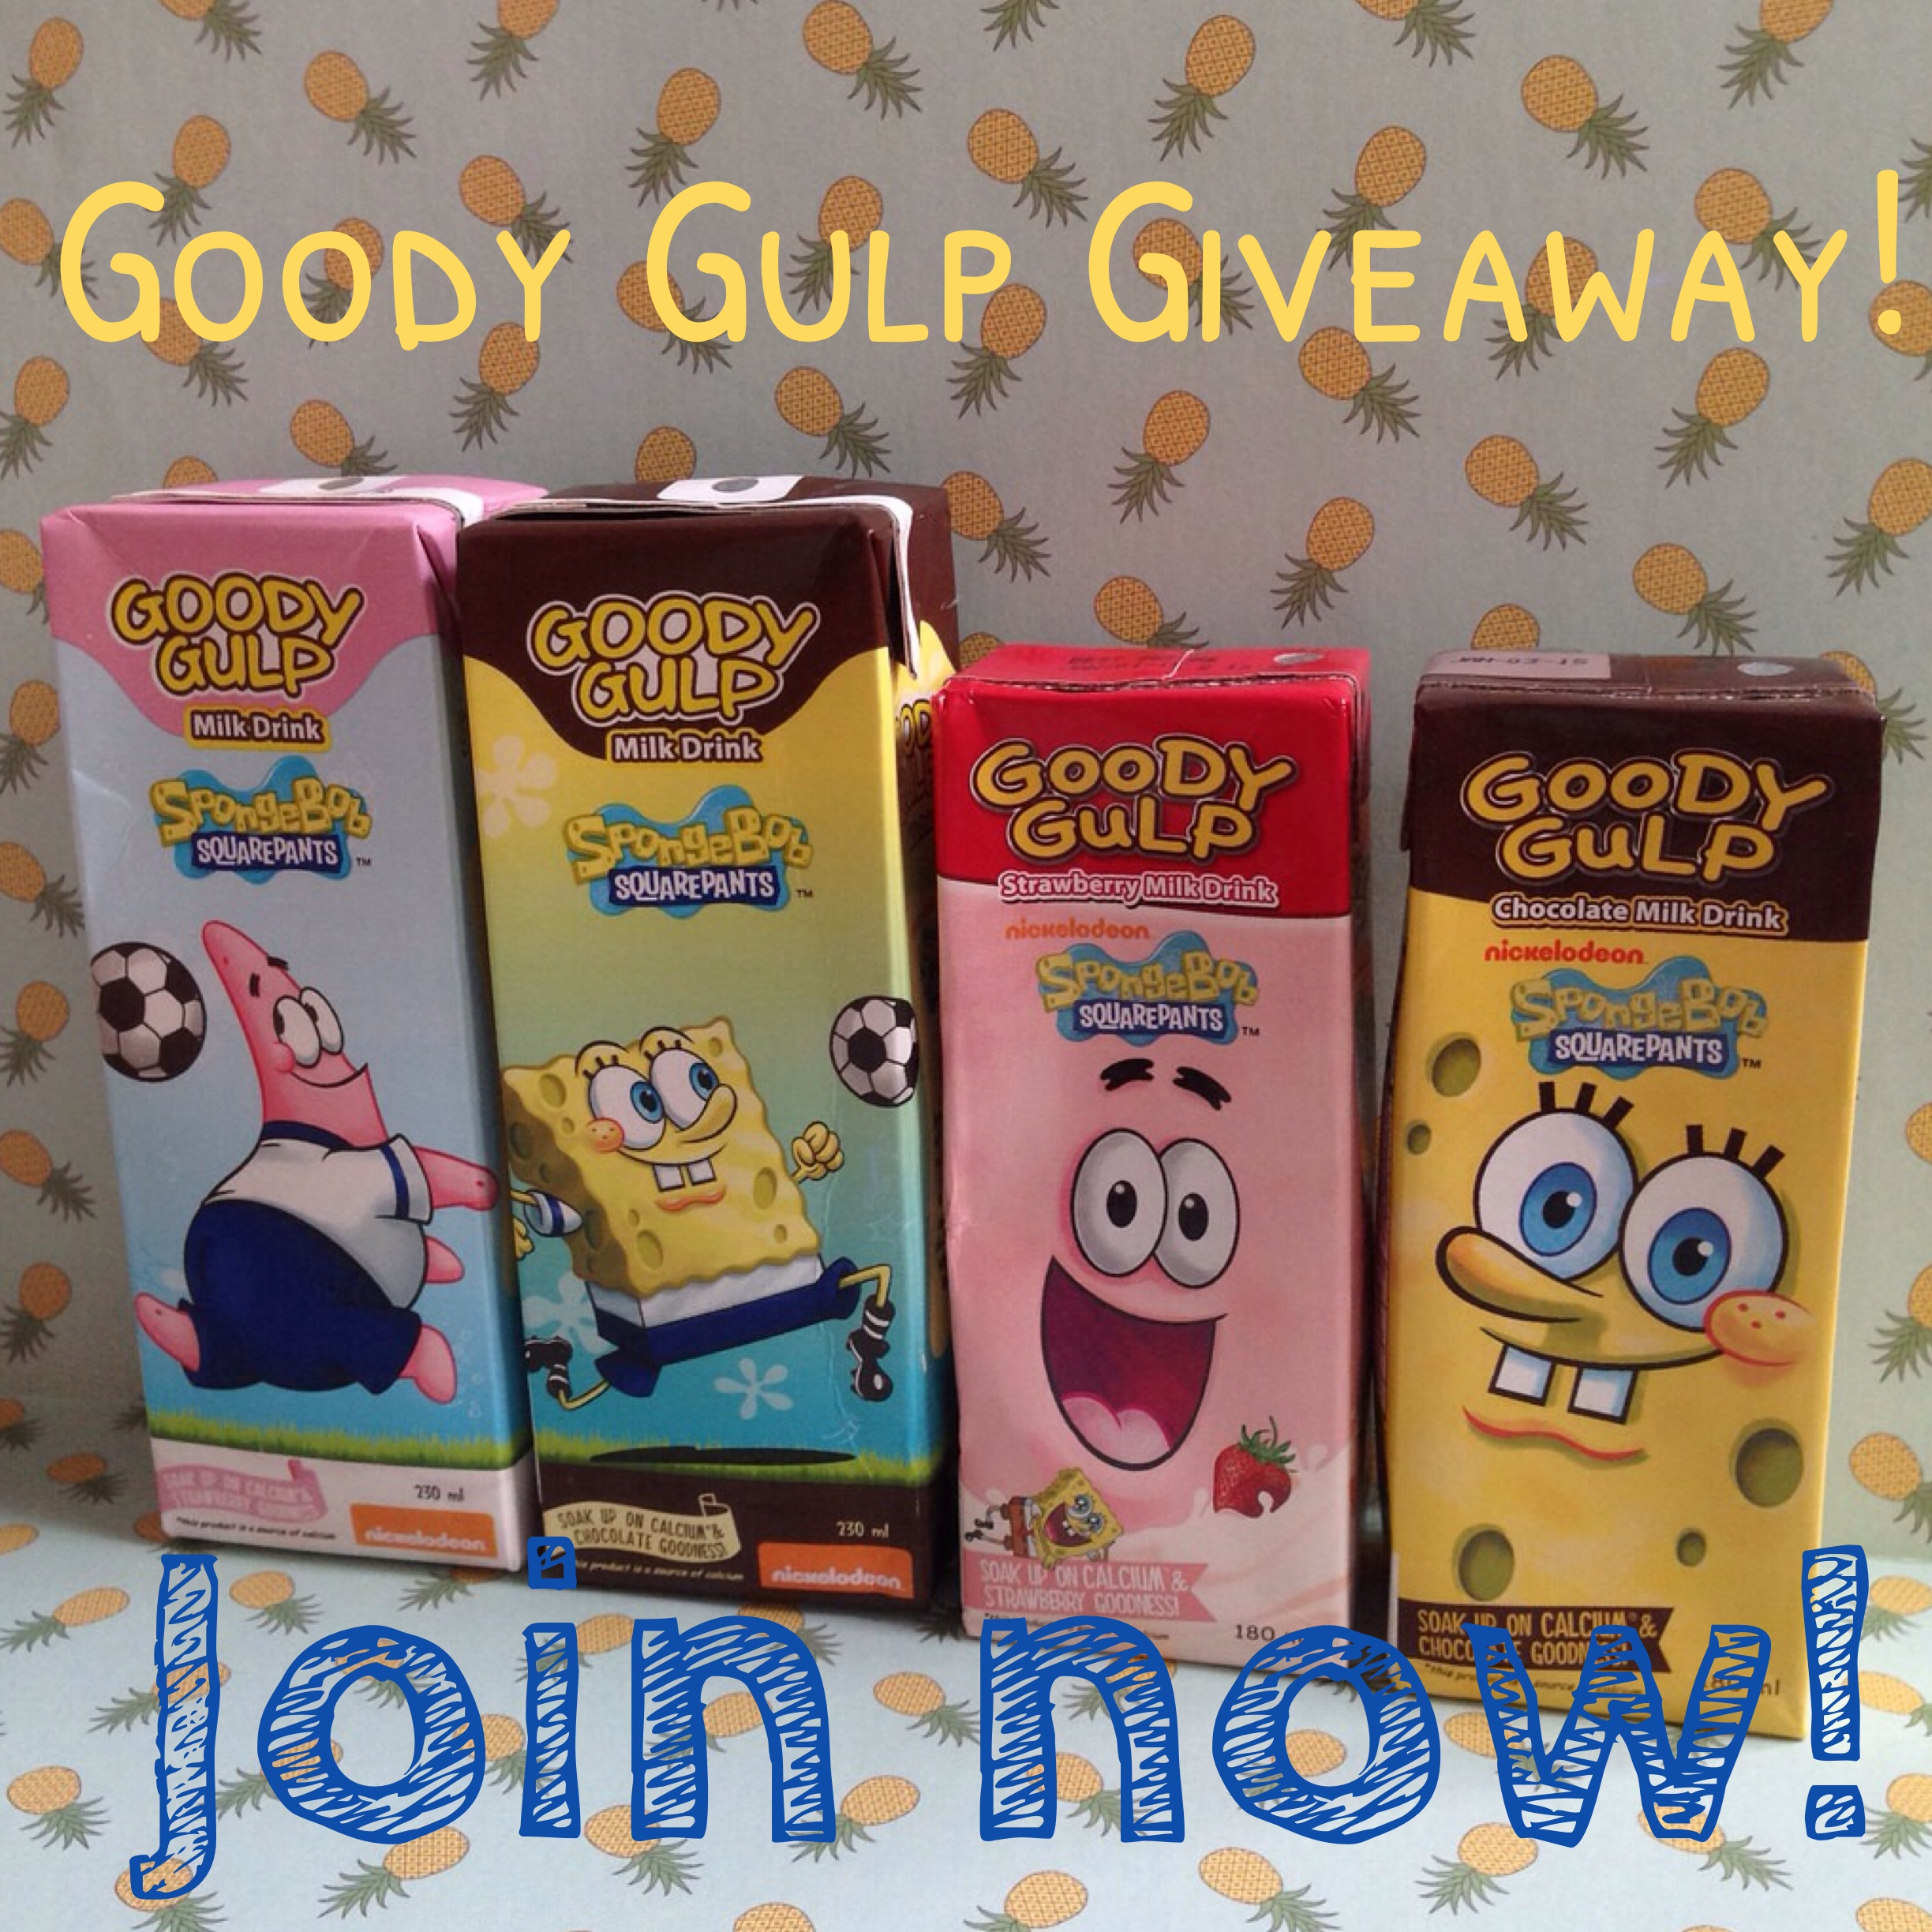 Goody Gulp Giveaway